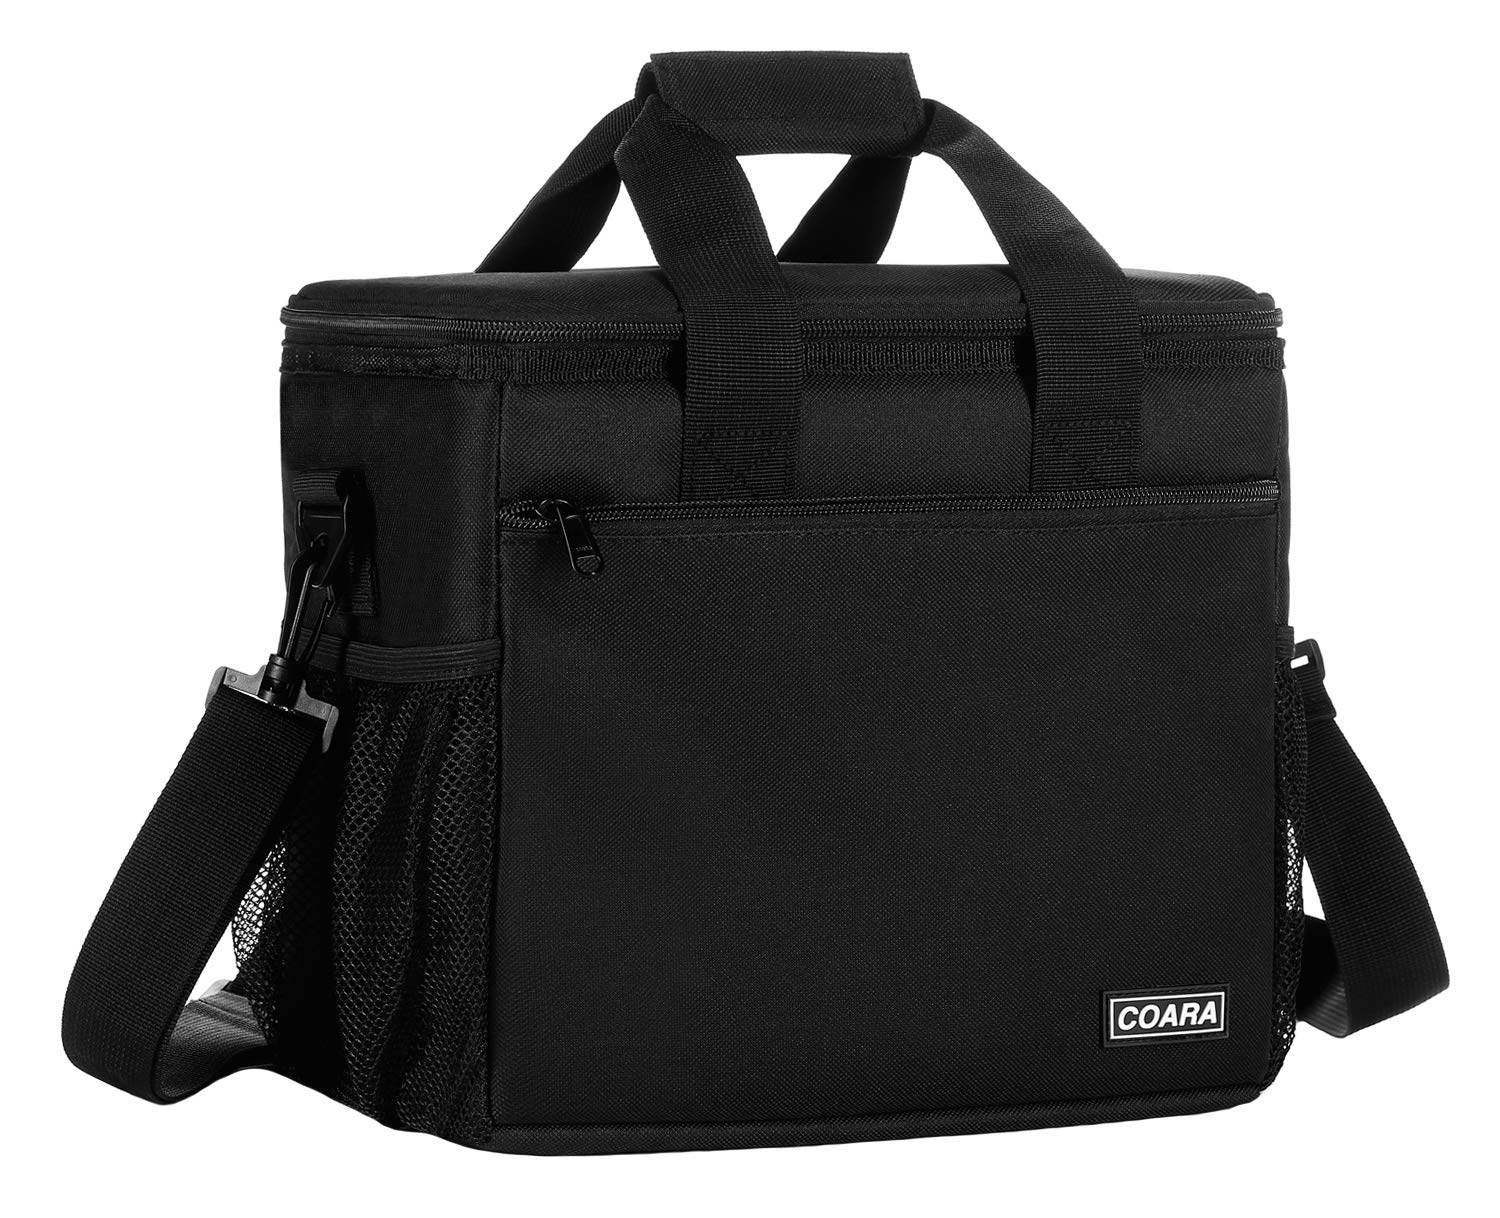 COARA Adult Lunch Box, Insulated Lunch Bag for Men & Women, Large Cooler Tote Bag with Leakproof Liner, Black